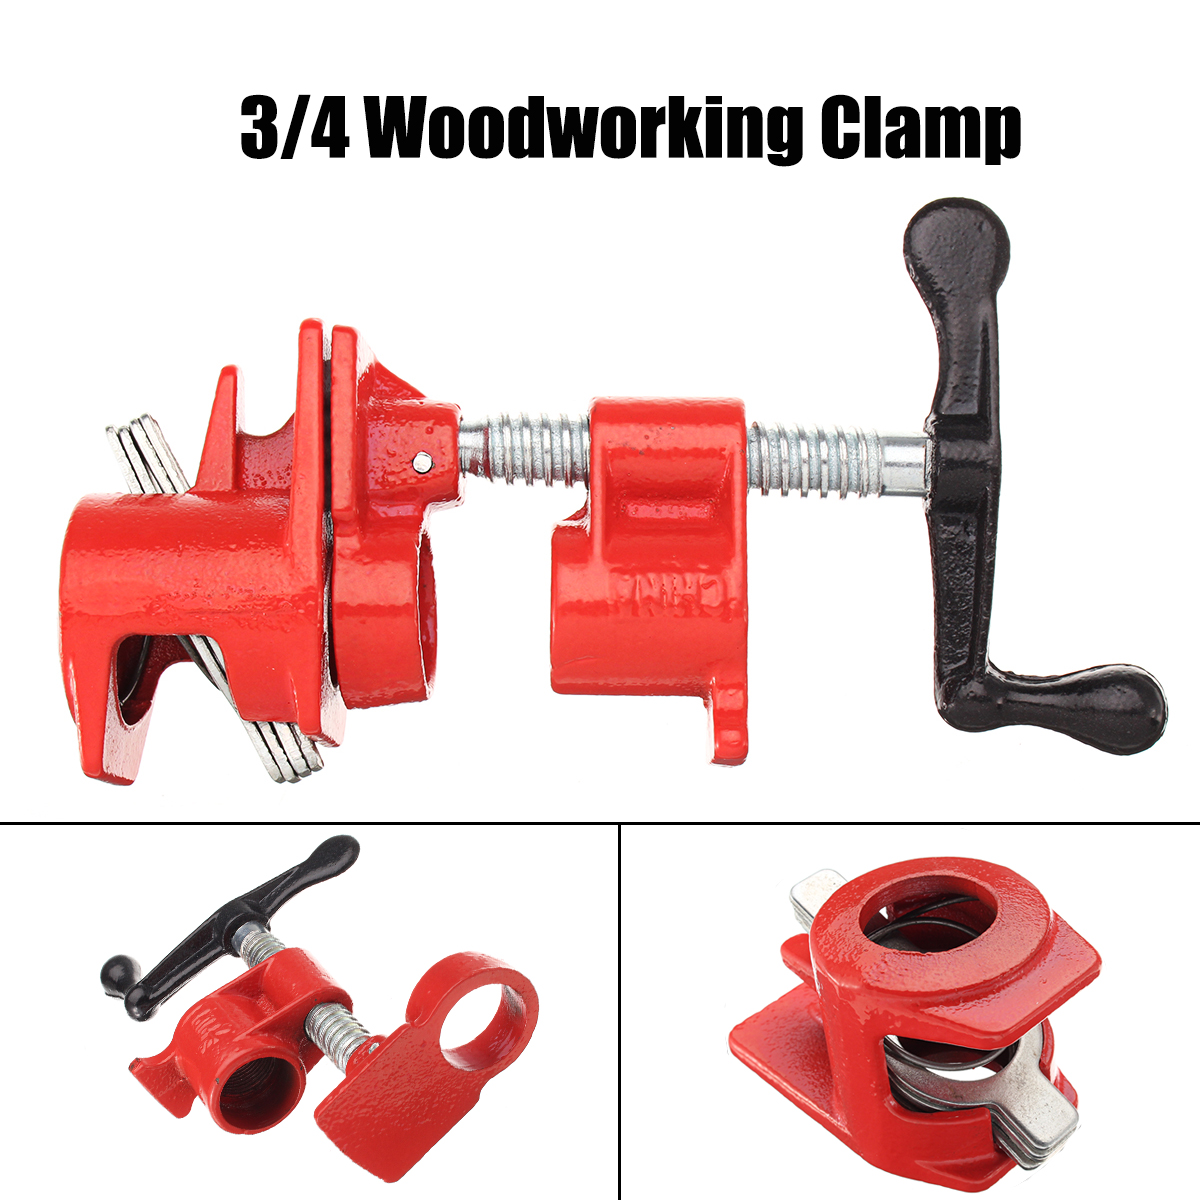 3/4 Inch Wood Gluing Pipe Clamp Set Heavy Duty PRO Woodworking Cast Iron